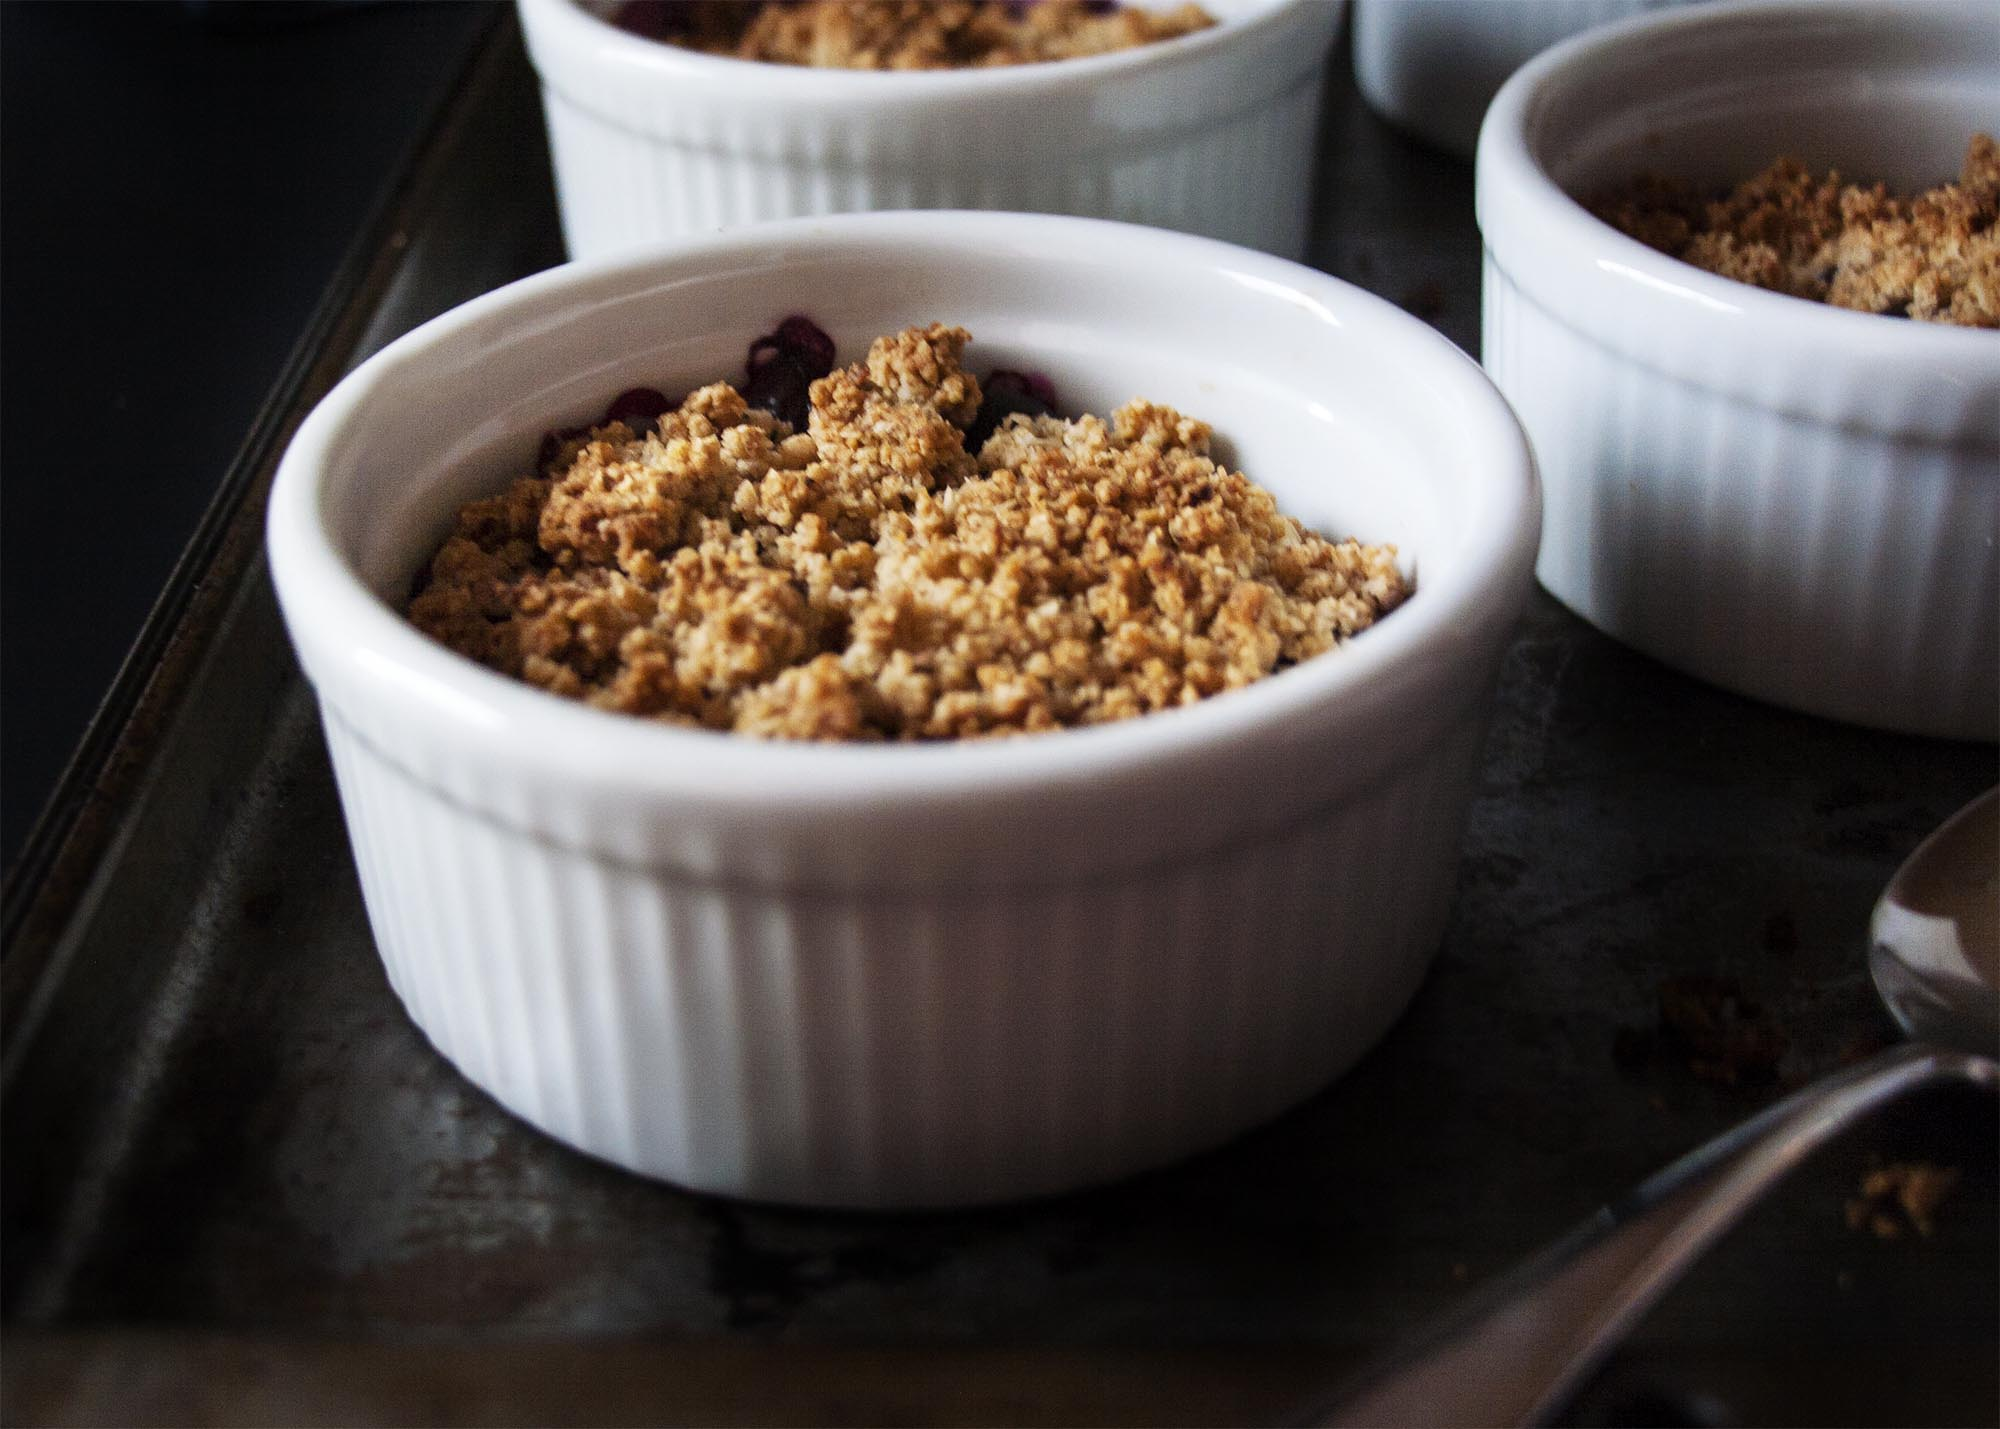 Gluten-Free Blueberry Peach Crisp - only 8 ingredients and 15 minutes prep and you're on your way to the perfect bowlful of sweet fruit and nutty topping   justalittlebitofbacon.com